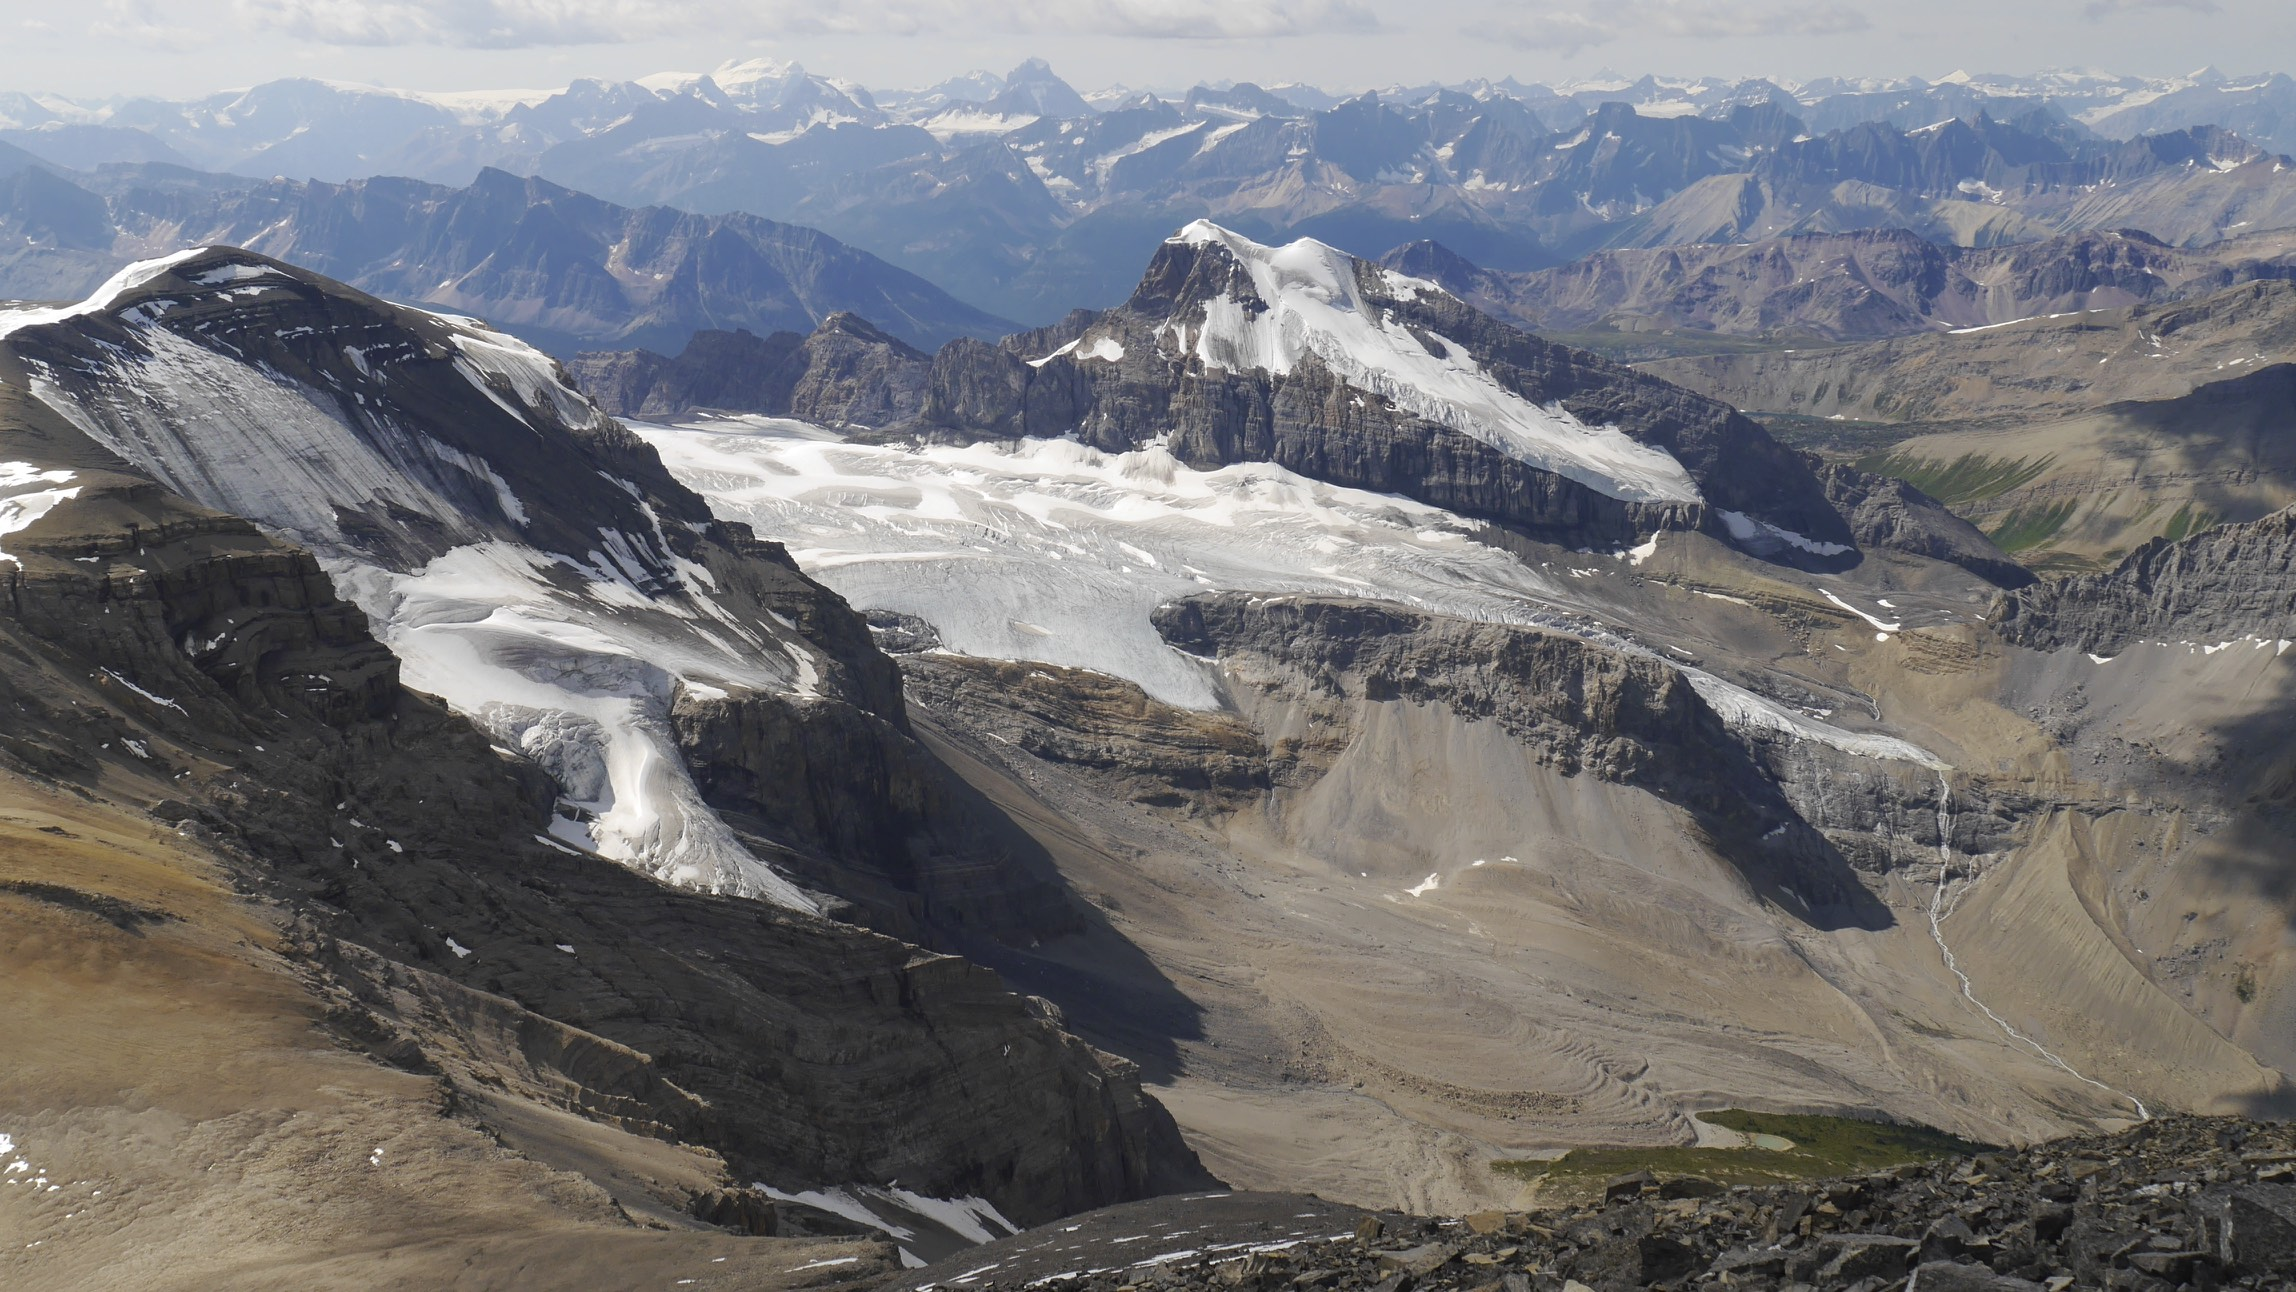 The view from the summit of Mt. Brazeau